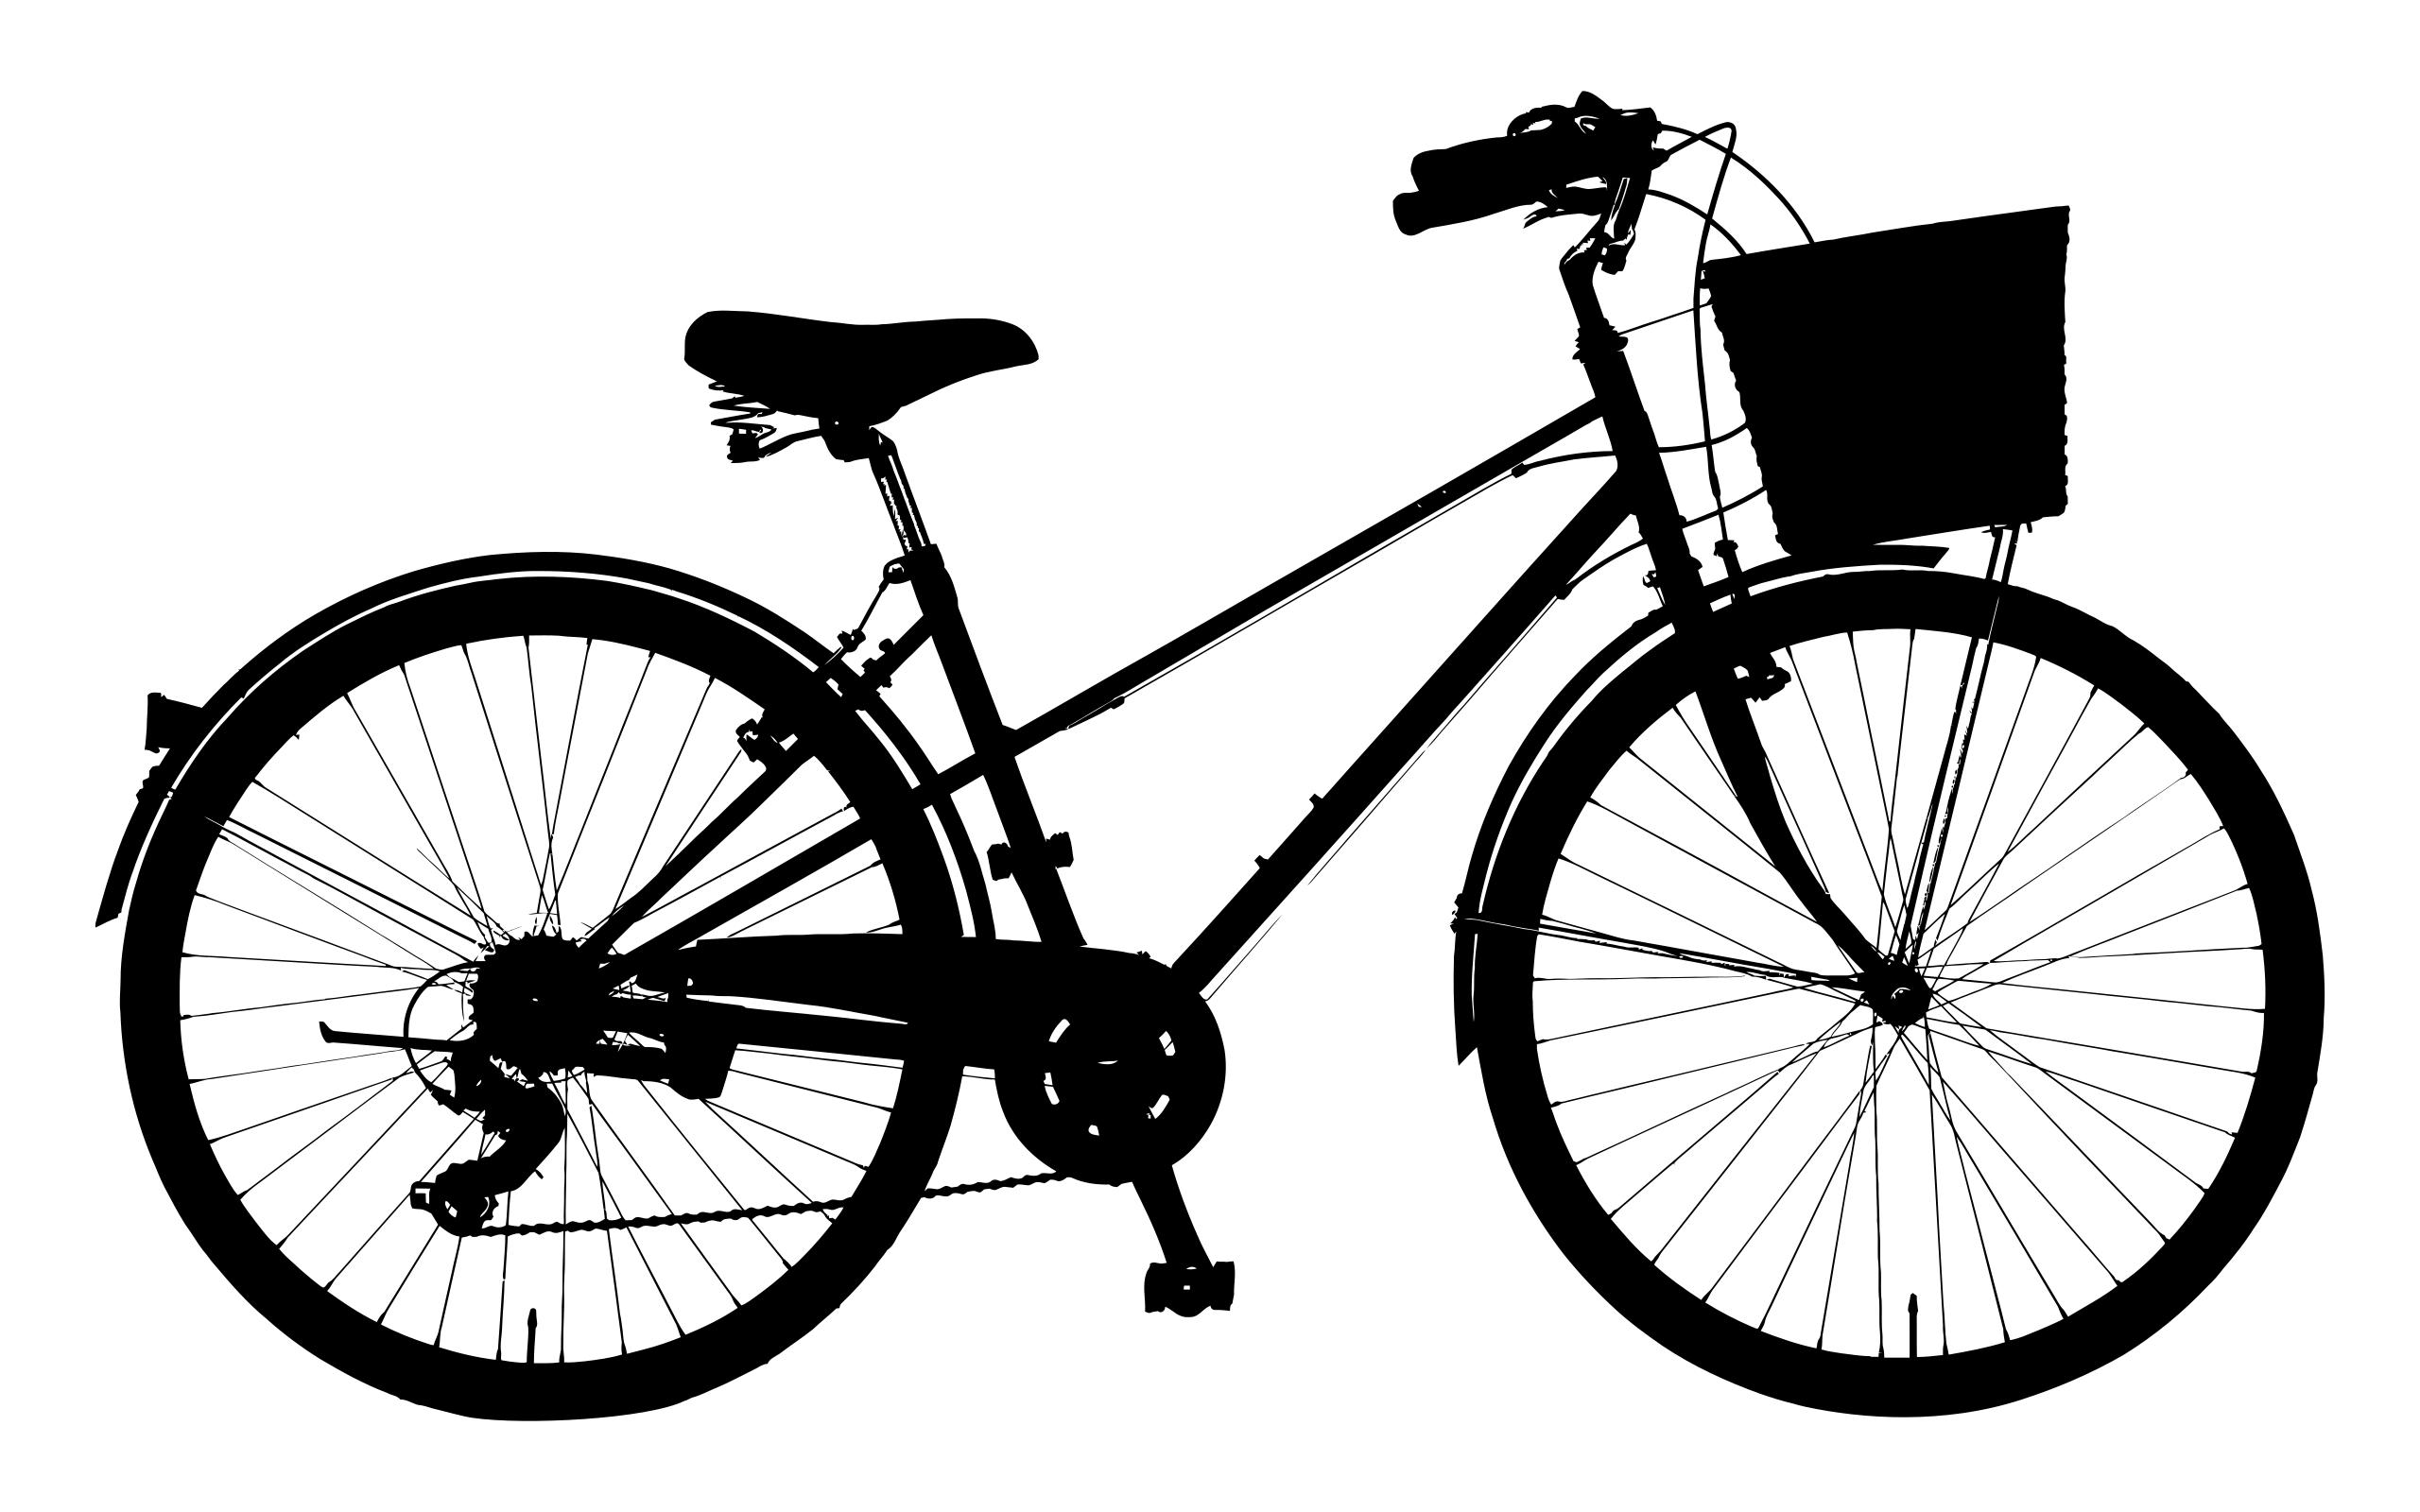 2560x1600 Detailed Bicycle Silhouette Clipart